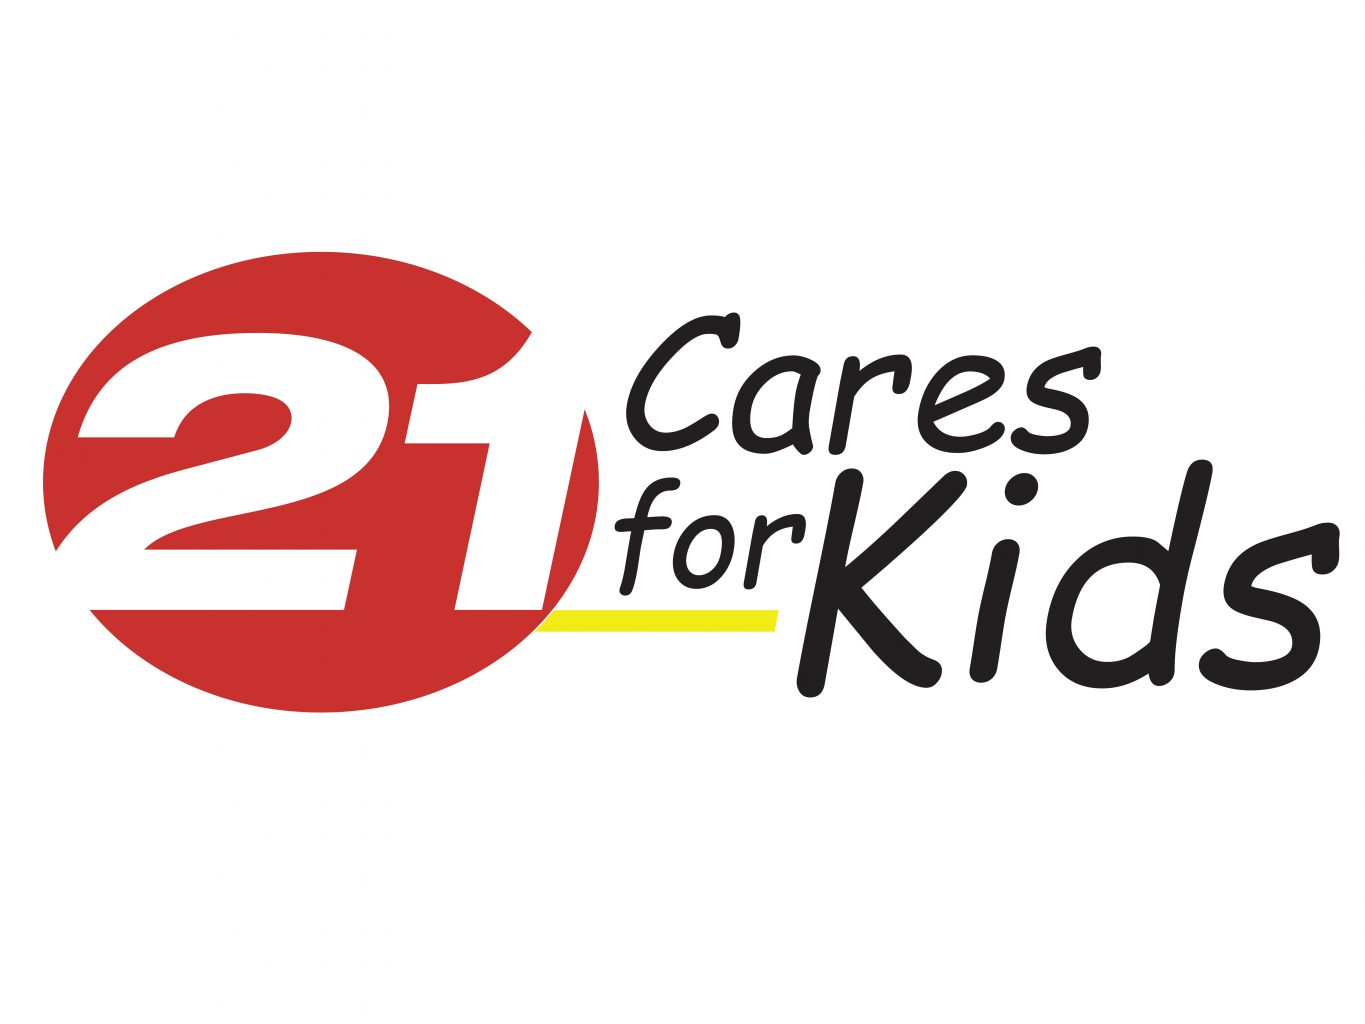 NewsChannel 21 Cares for Kids